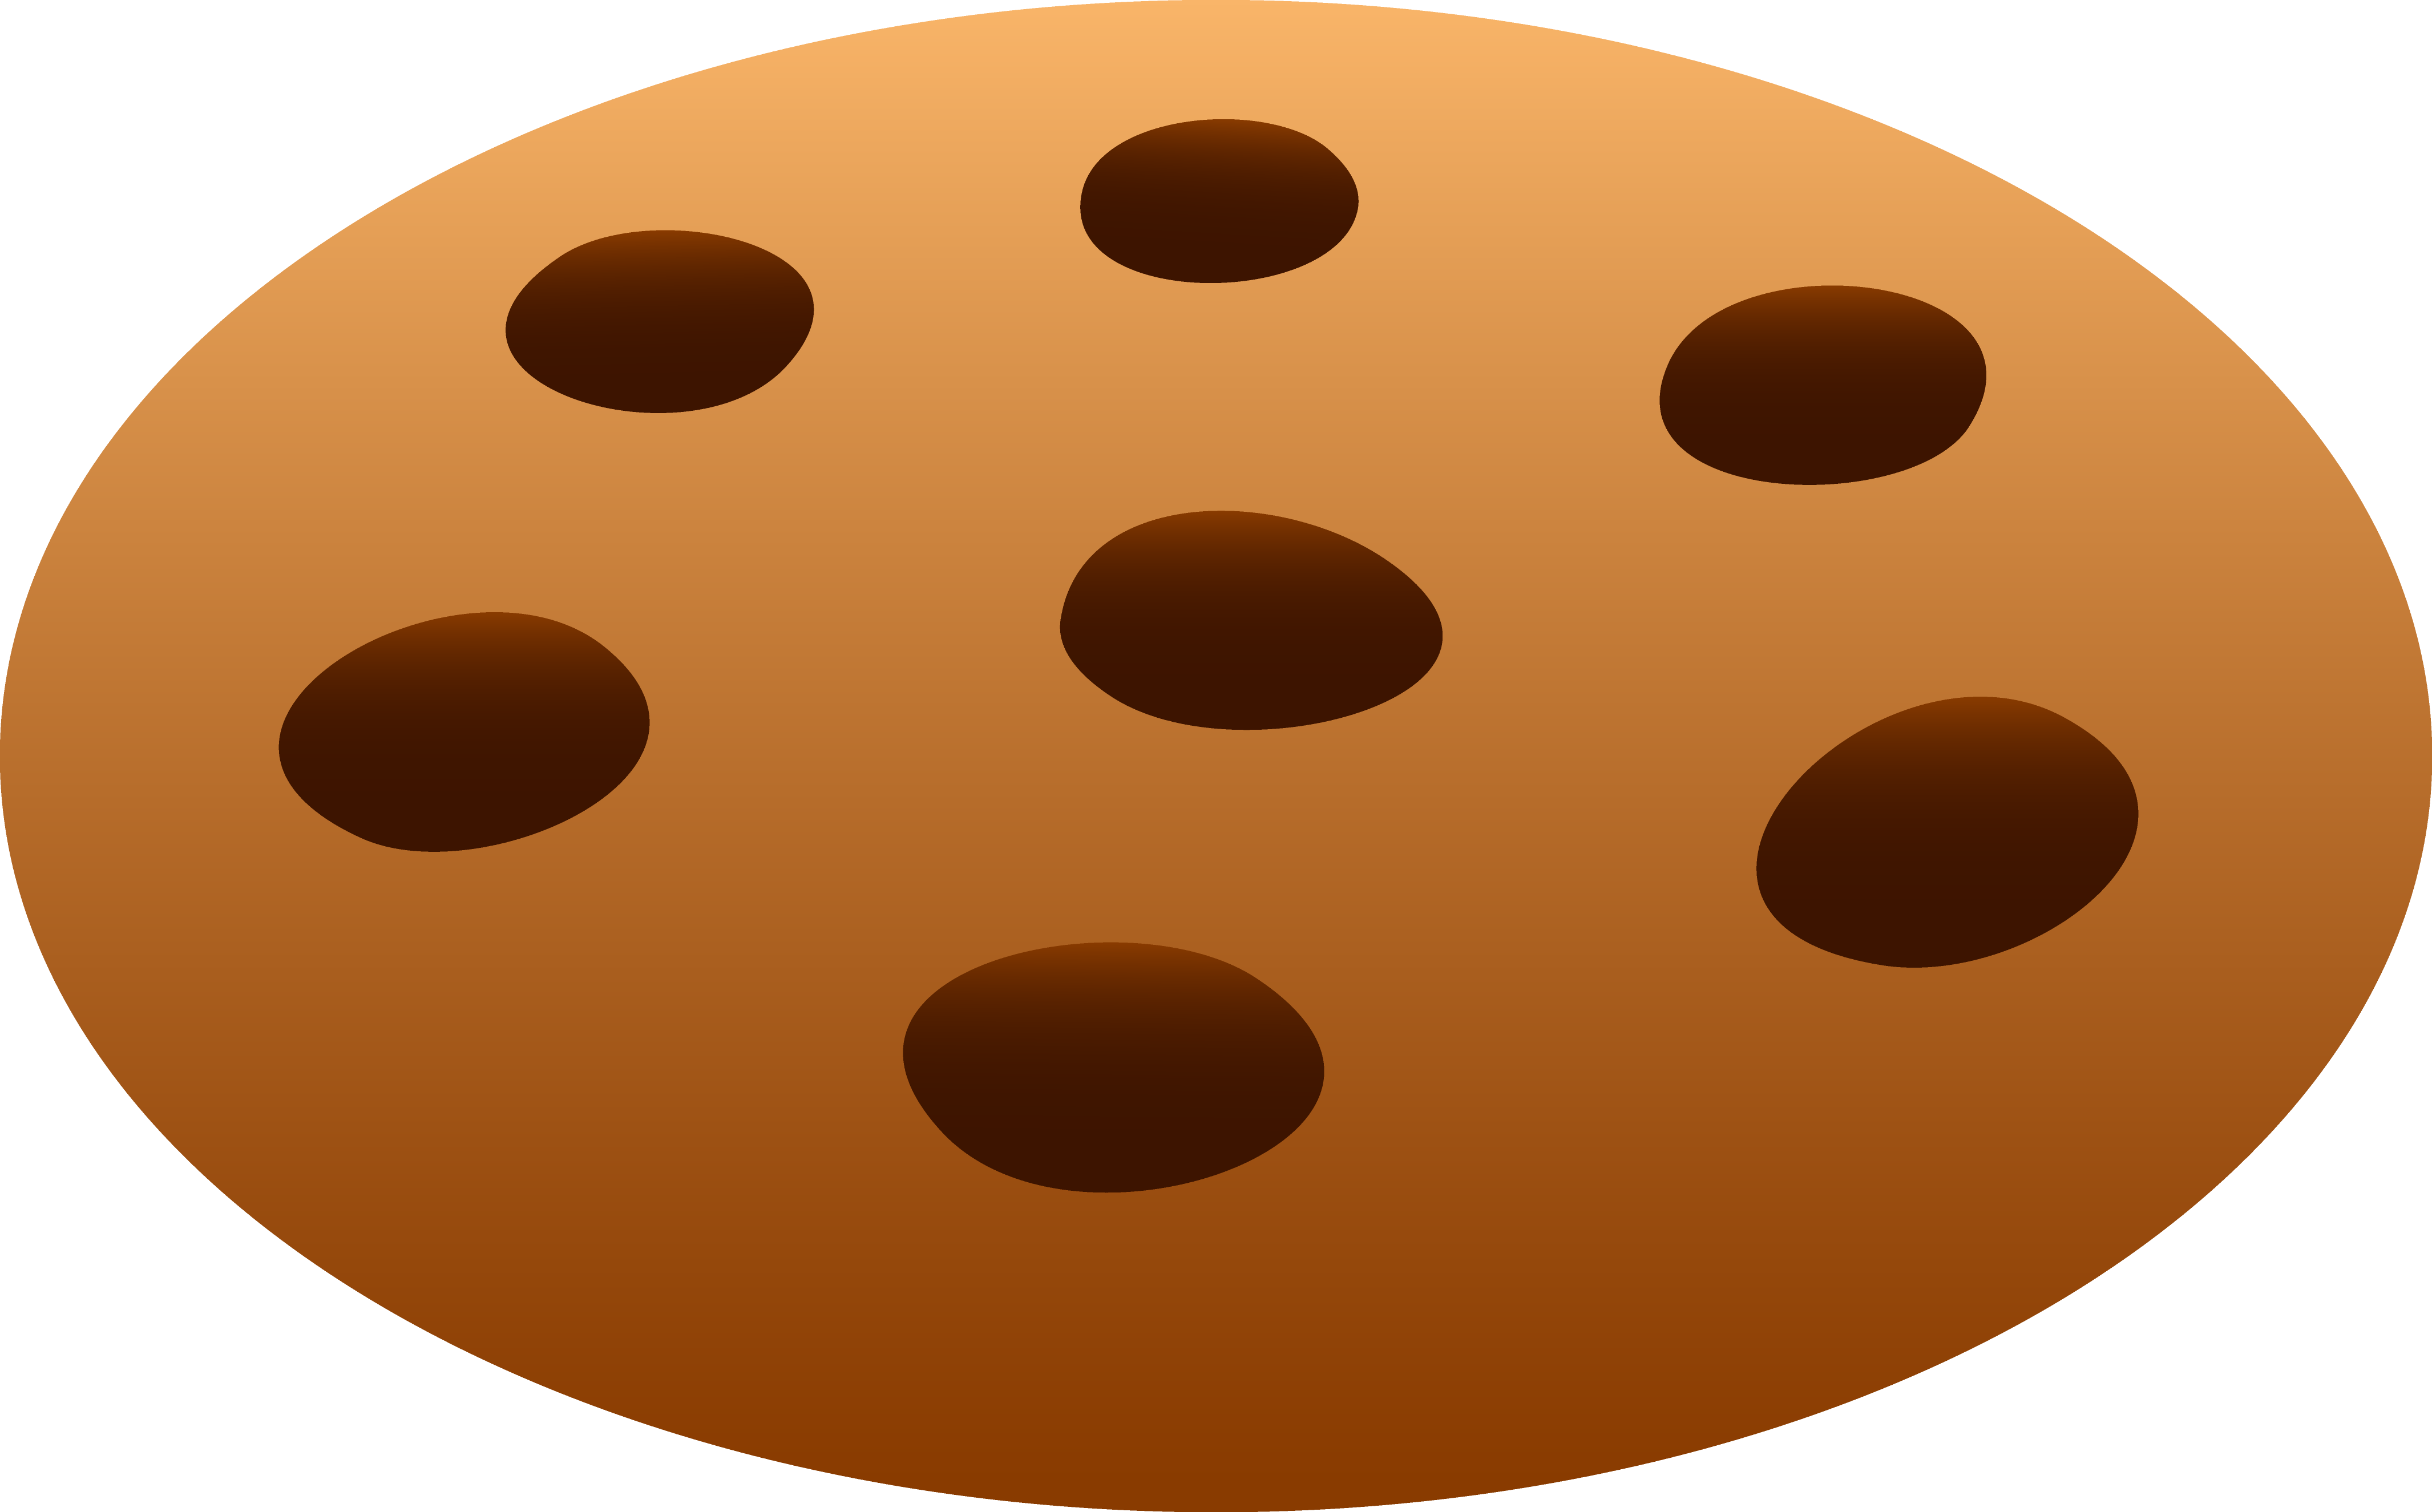 Cookie clipart #1, Download drawings